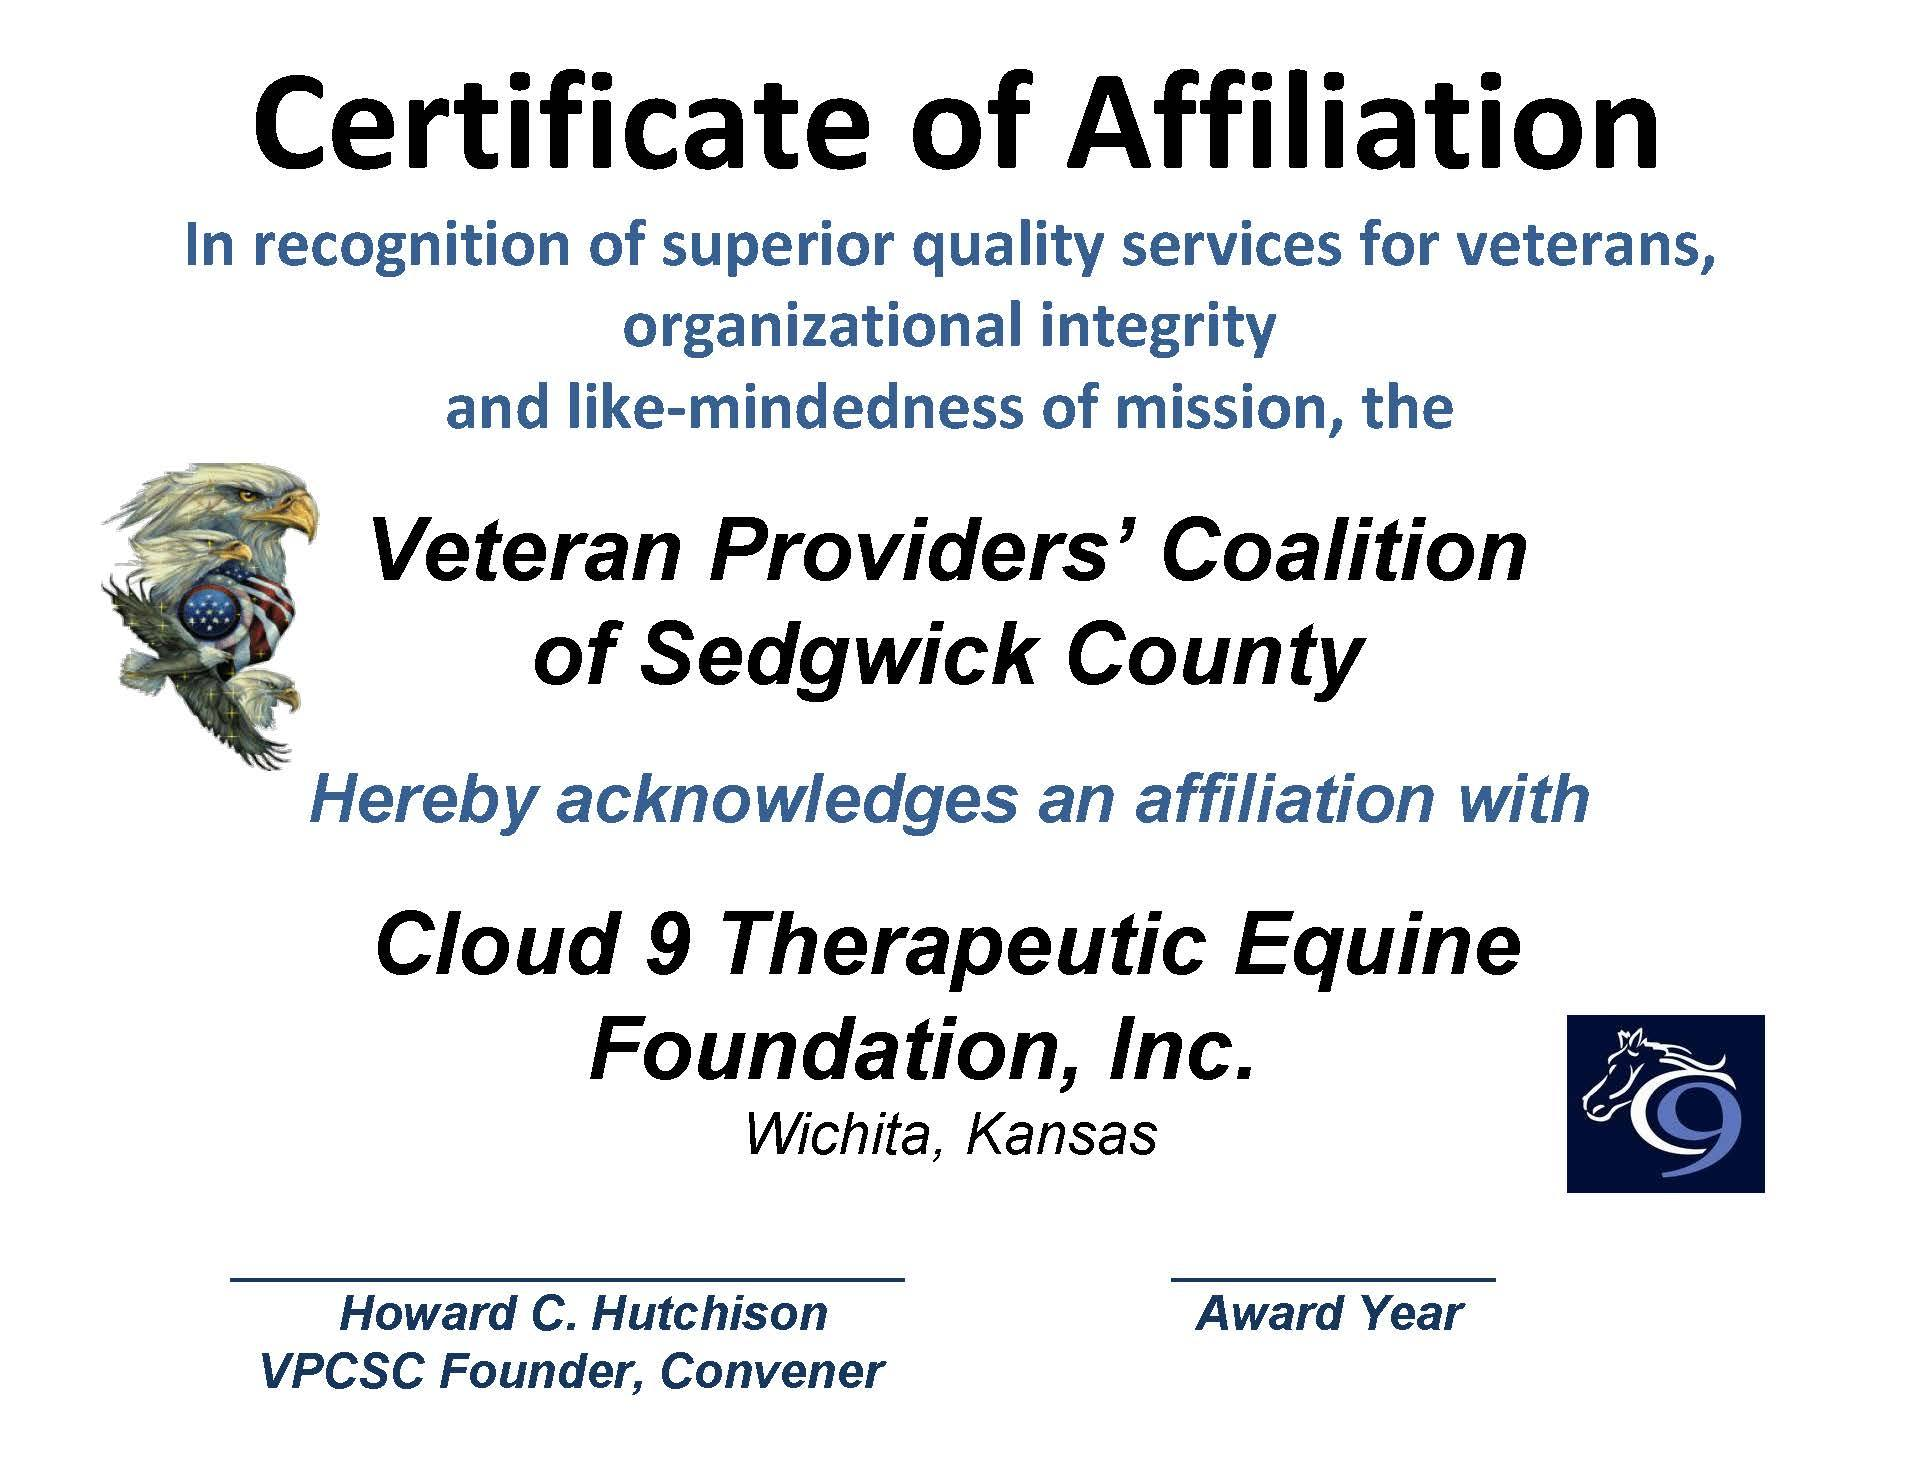 AFFILIATION CERT. CLOUD 9 2015